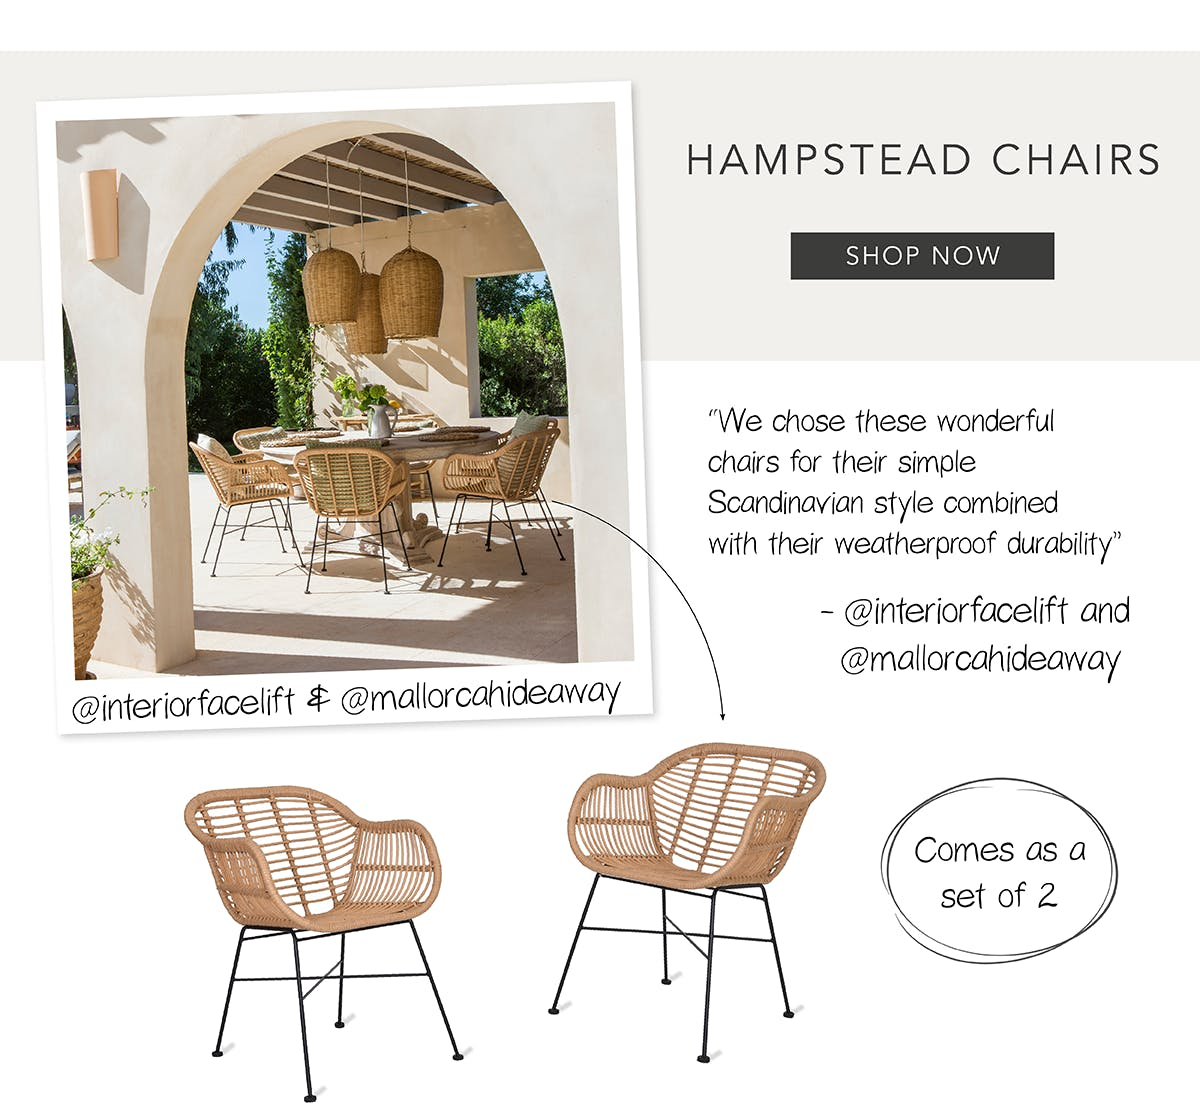 Hampstead Chairs